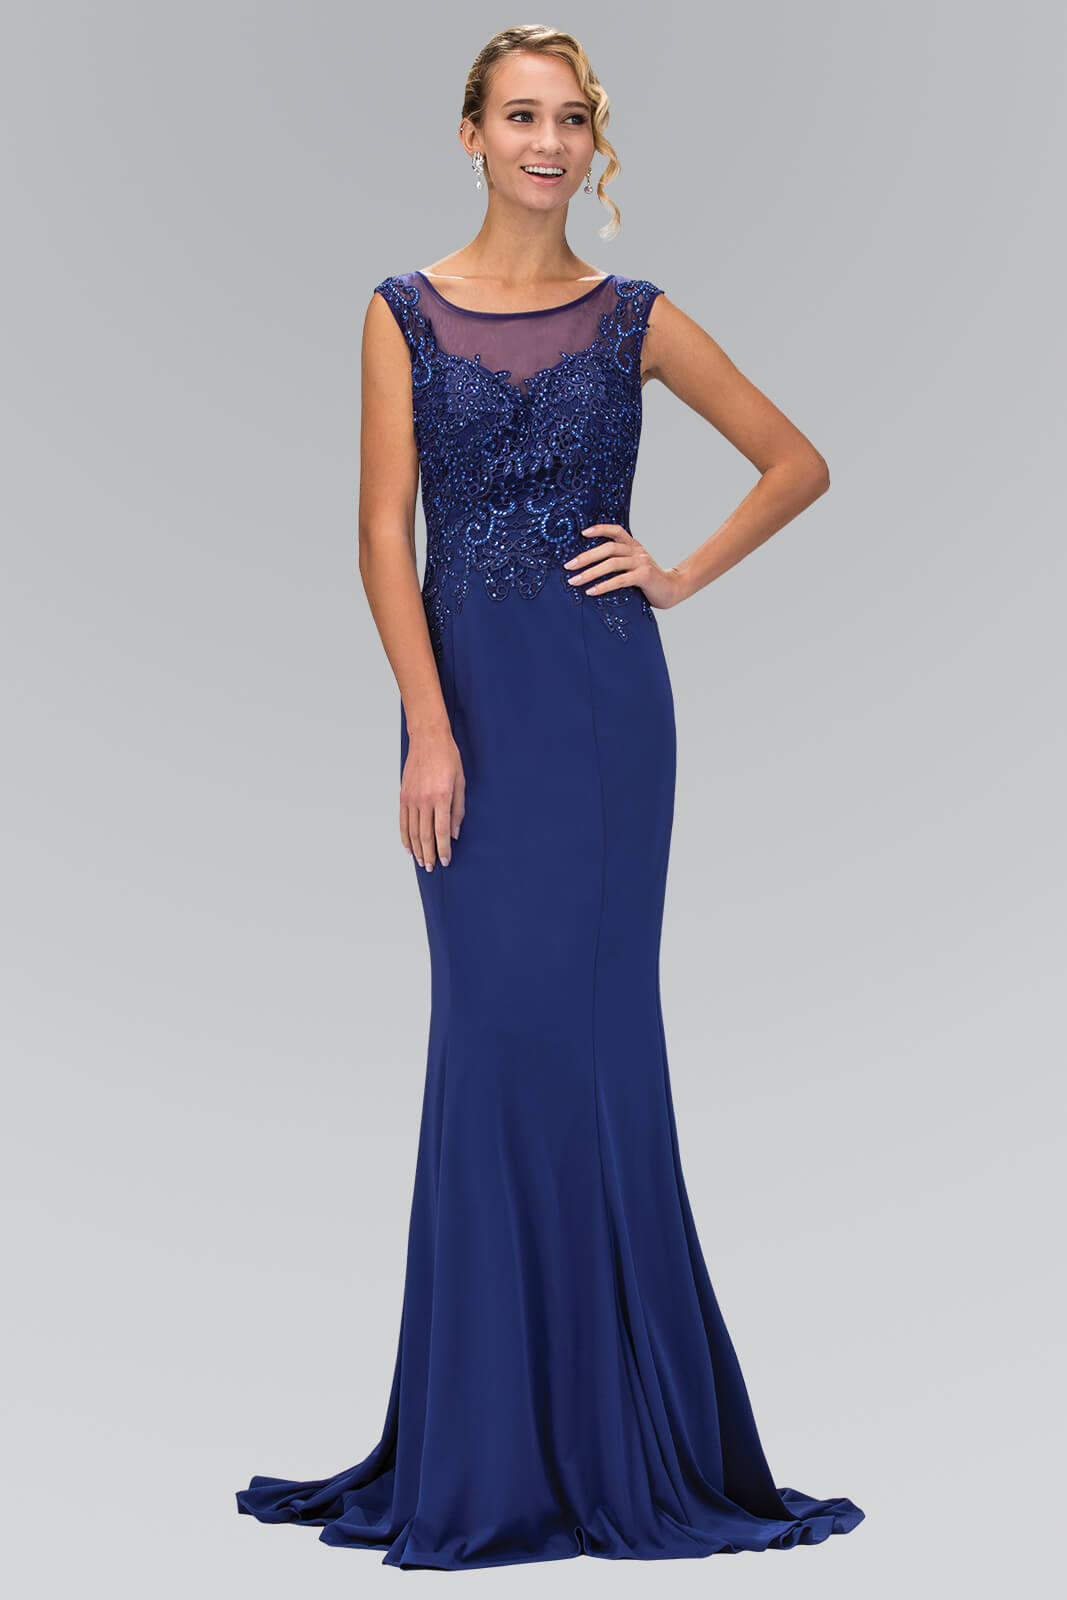 Sleeveless Rome Jersey Long Prom Dress Formal - The Dress Outlet Royal Blue  Elizabeth K ... 87e08c103